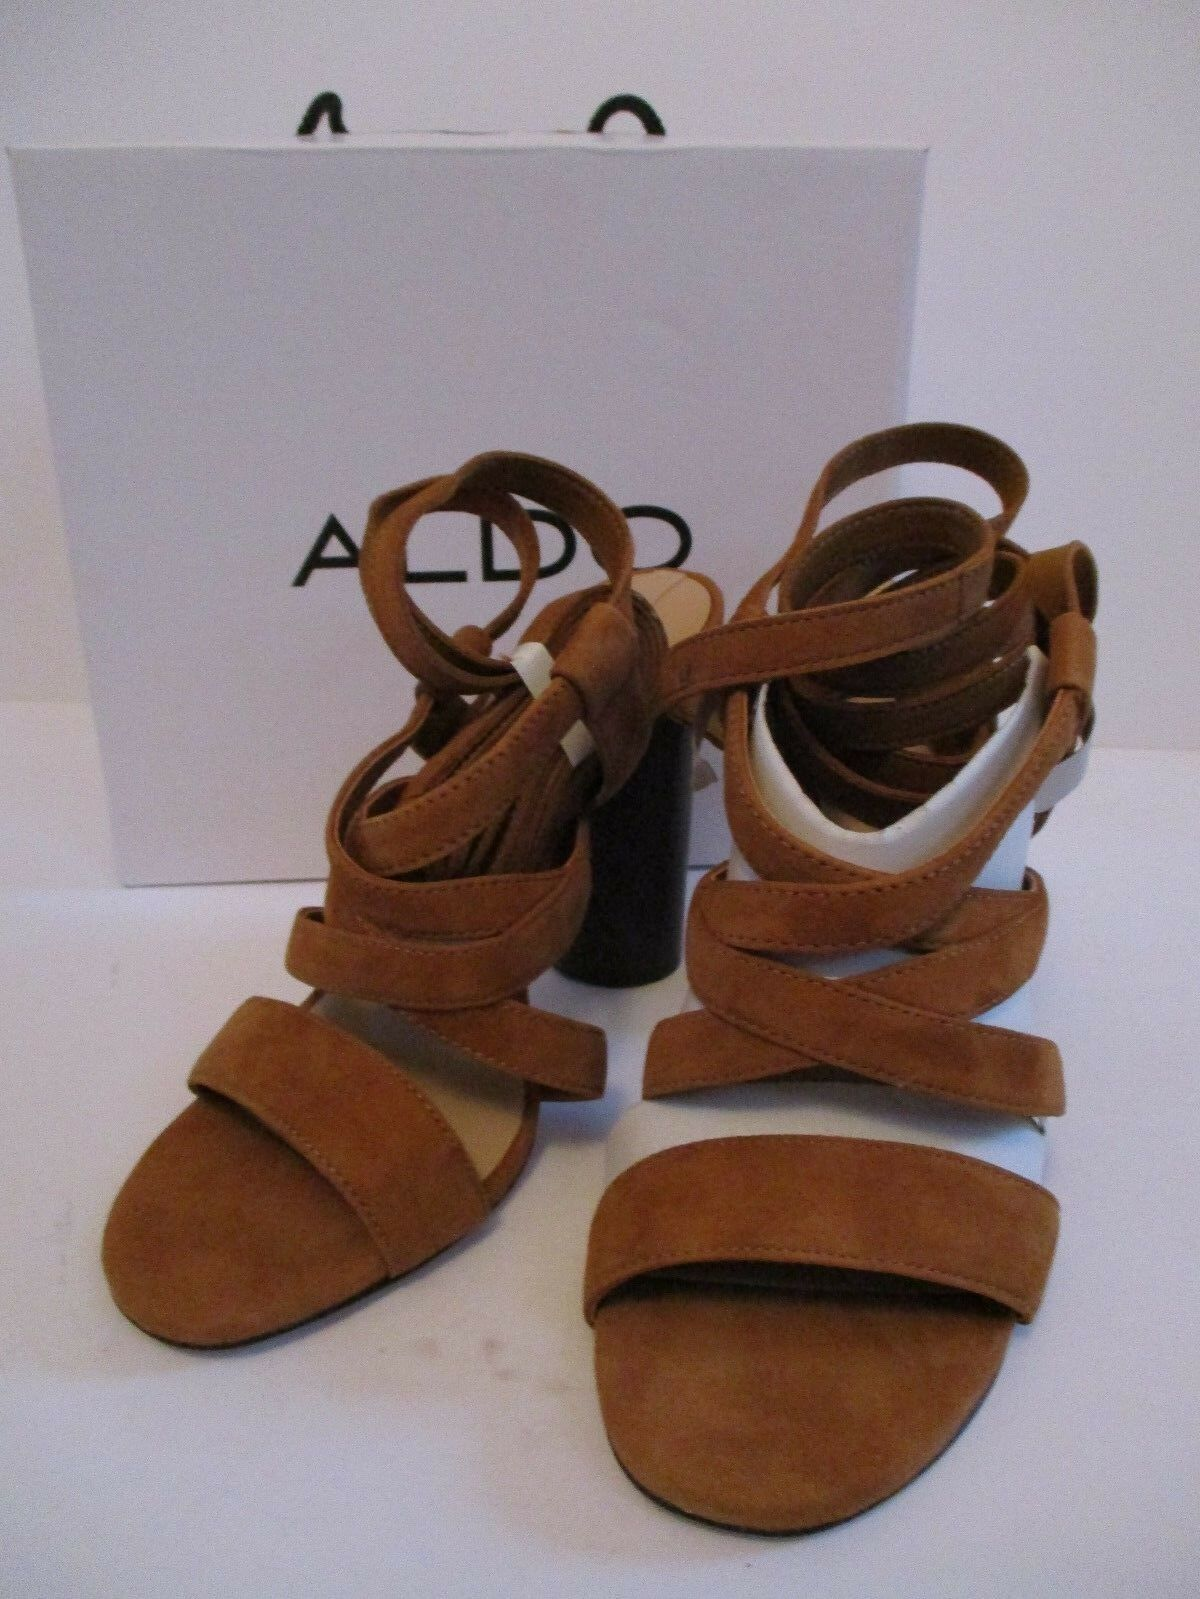 ALDO EXERILA Braun Strappy Block Heeled Open Toe Schuhes Größe 4.5 NEW IN BOX